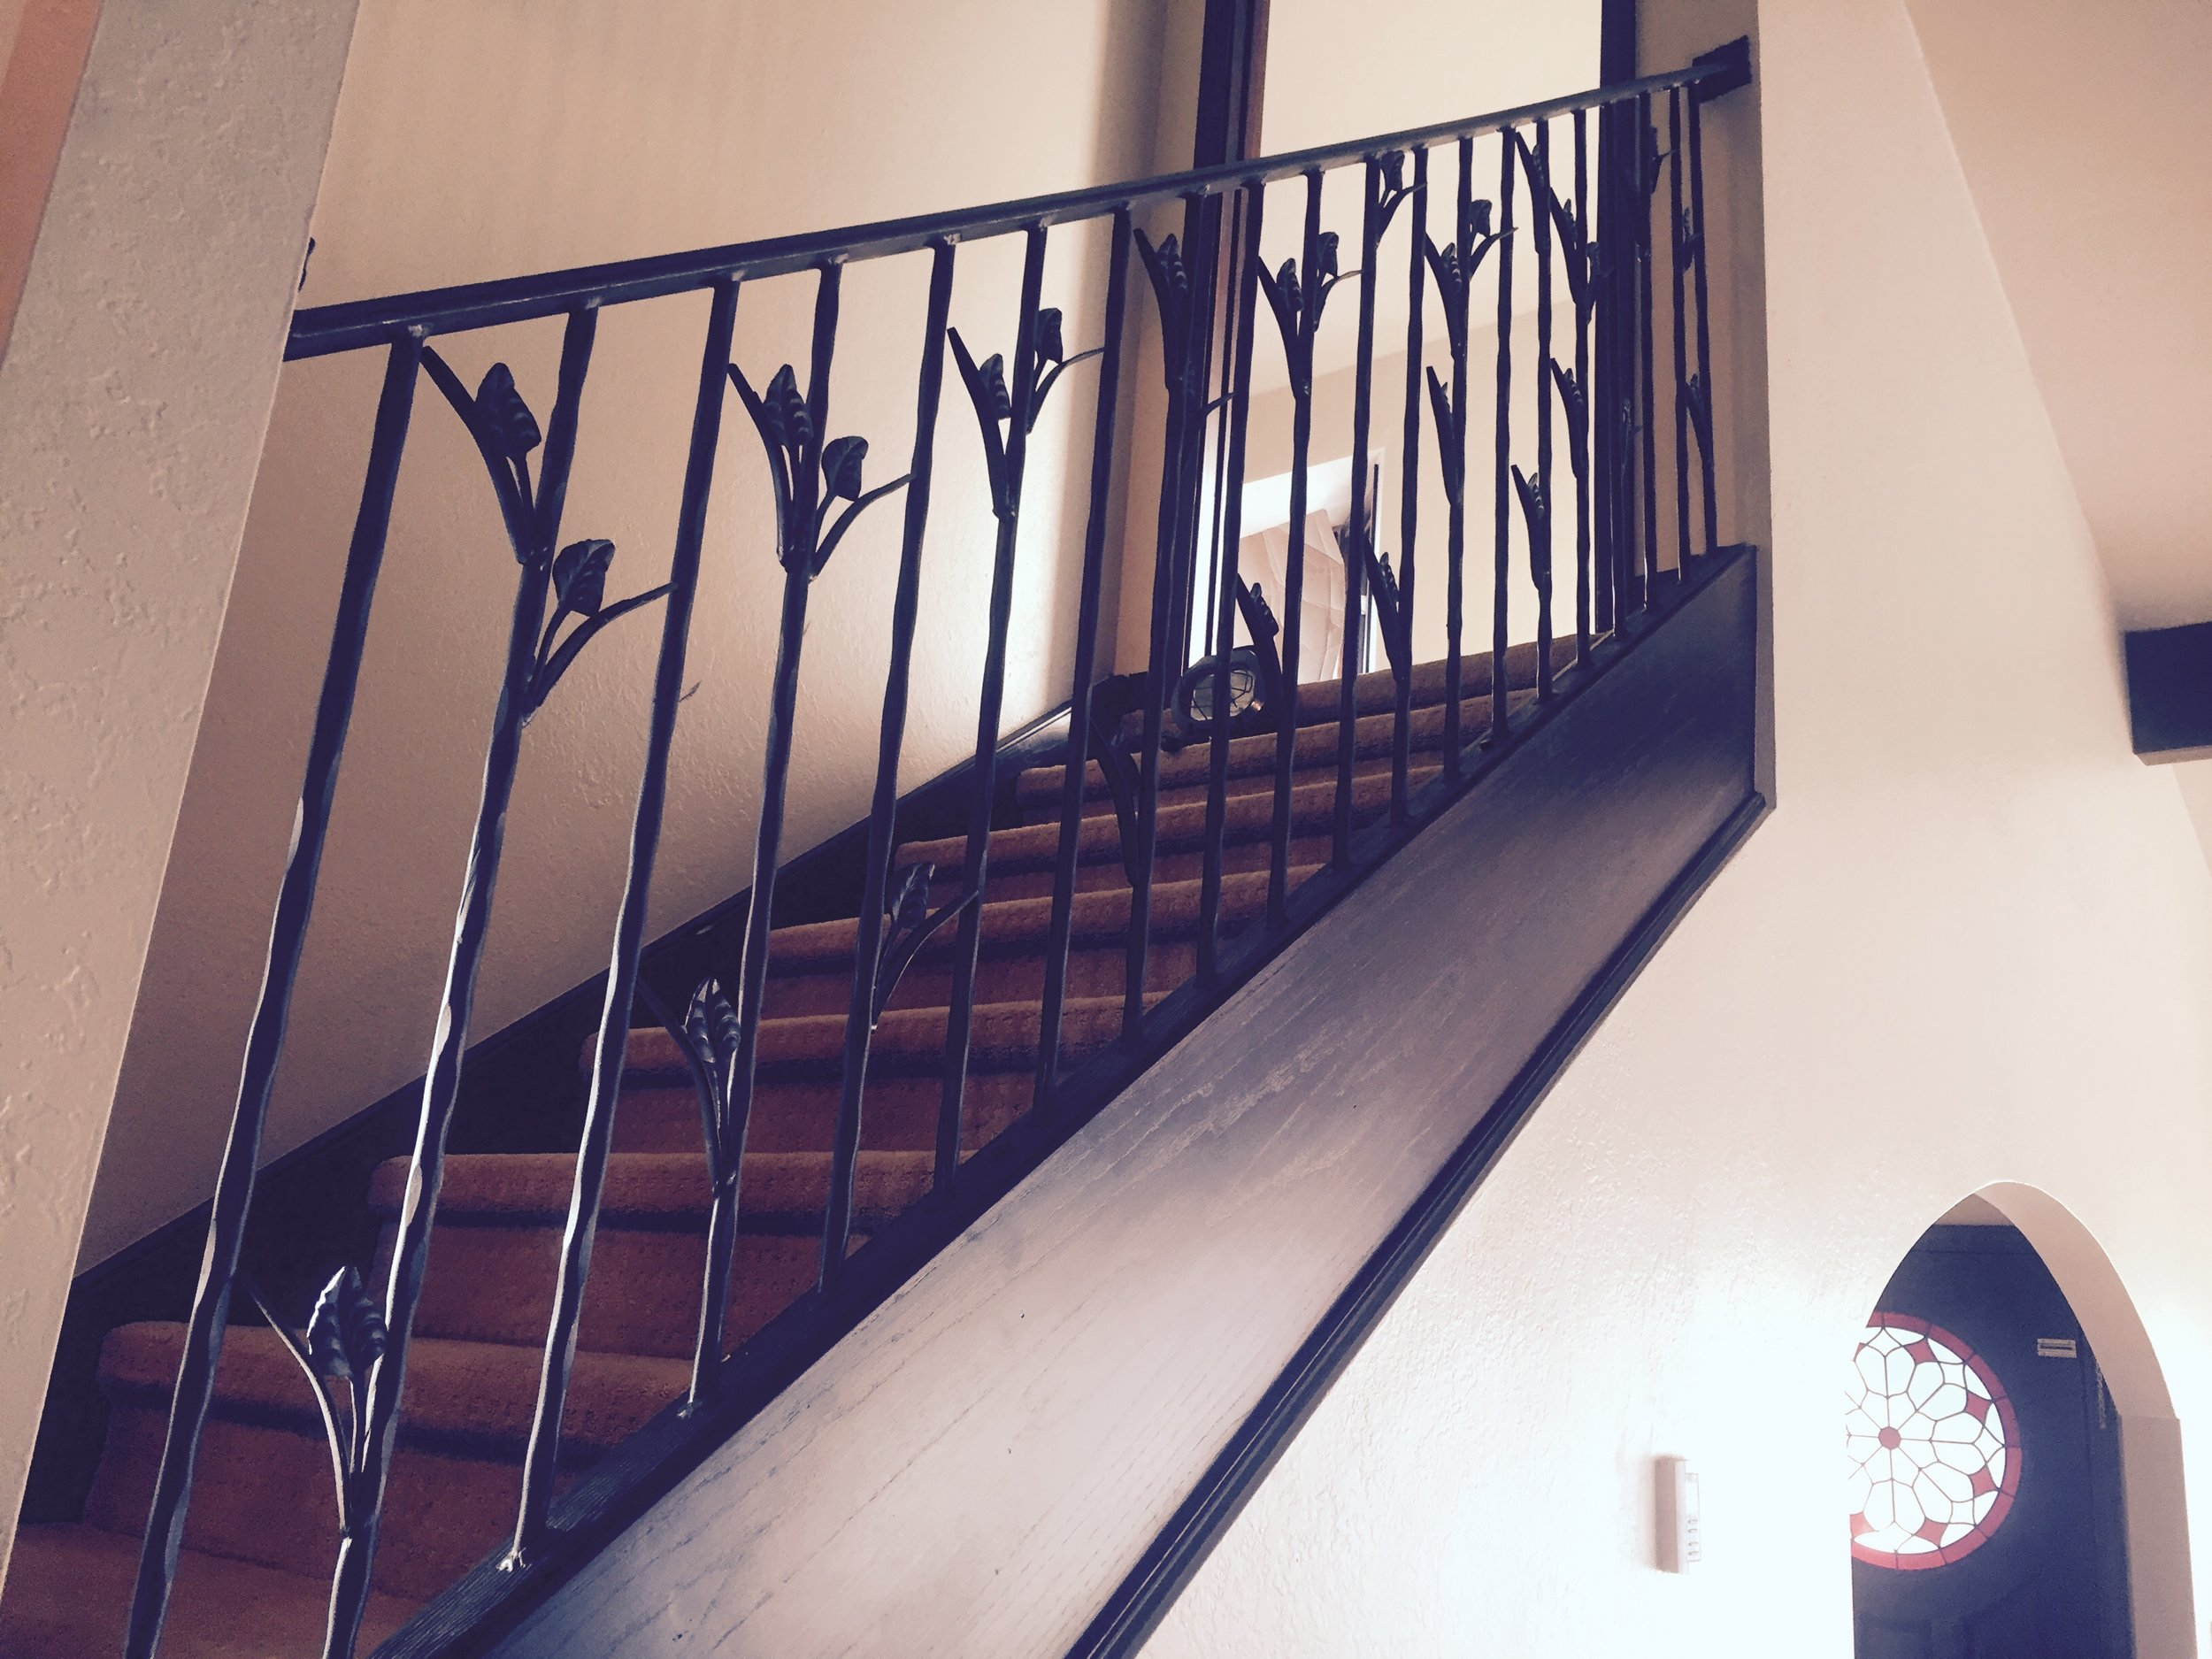 architectural metal work - Break up the wood in your home with a custom steel handrail railing. Choose from a vast assortment of decorative moldings and designs to create a special feel to your home.